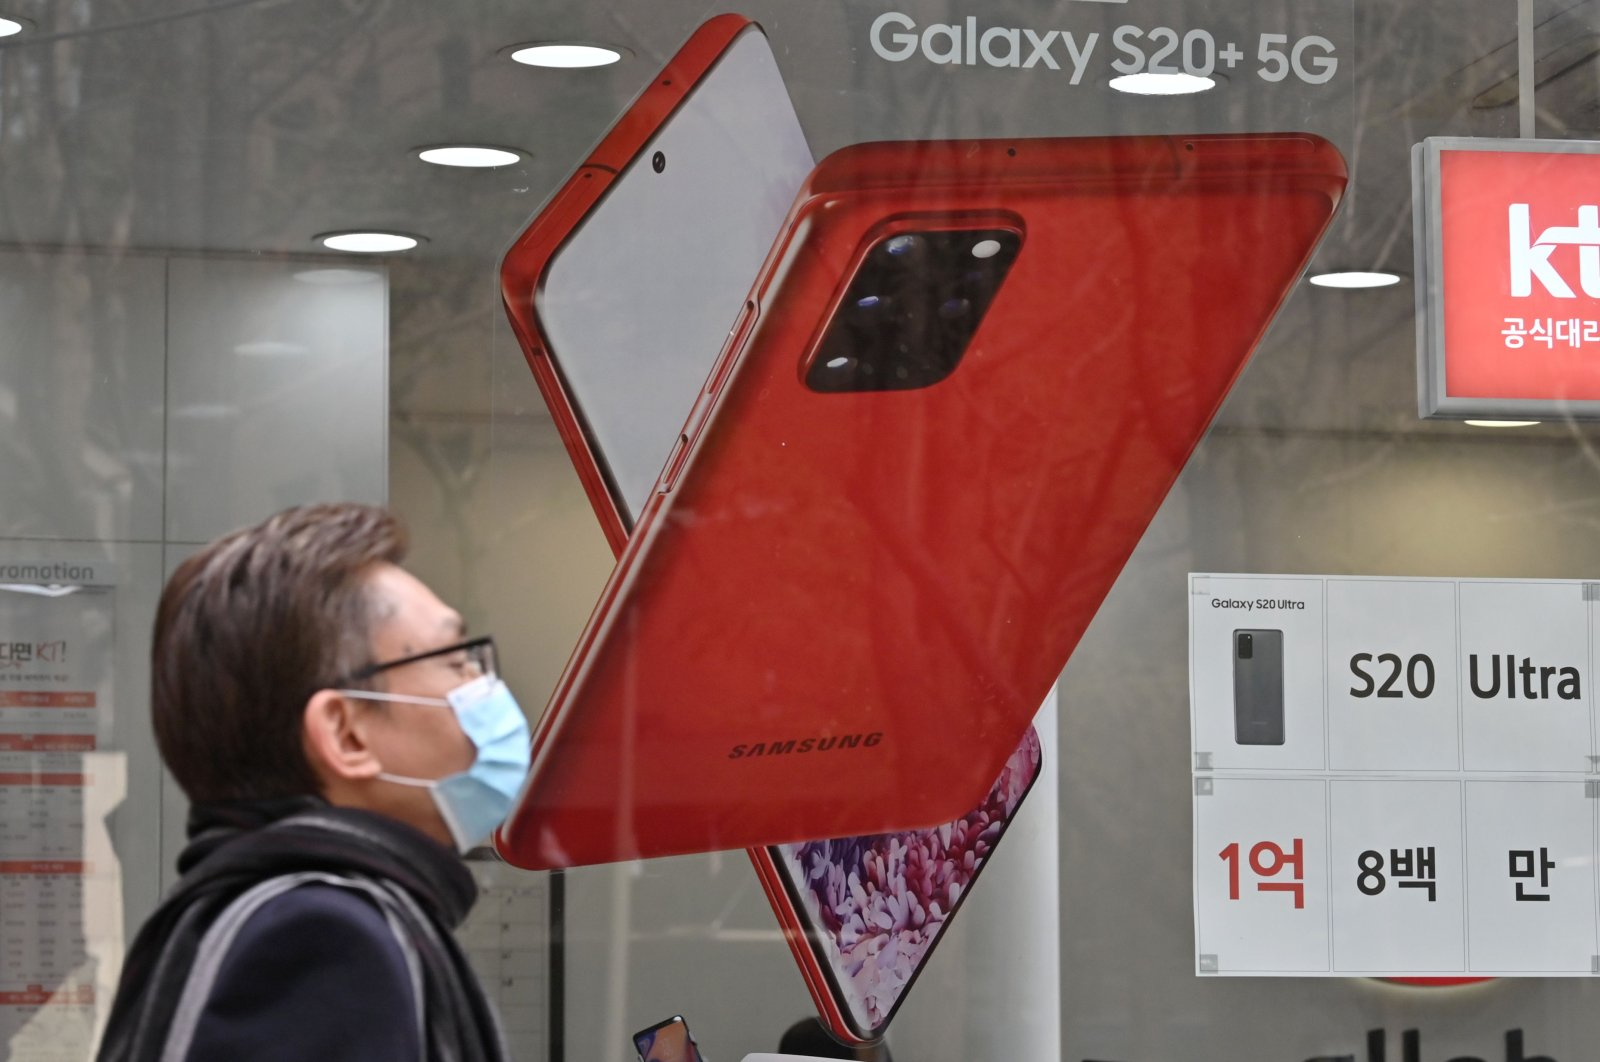 A man walks past an advertisement for the Samsung Galaxy S20 5G smartphone at a telecom shop in Seoul, Tuesday, April 7, 2020. (AFP Photo)